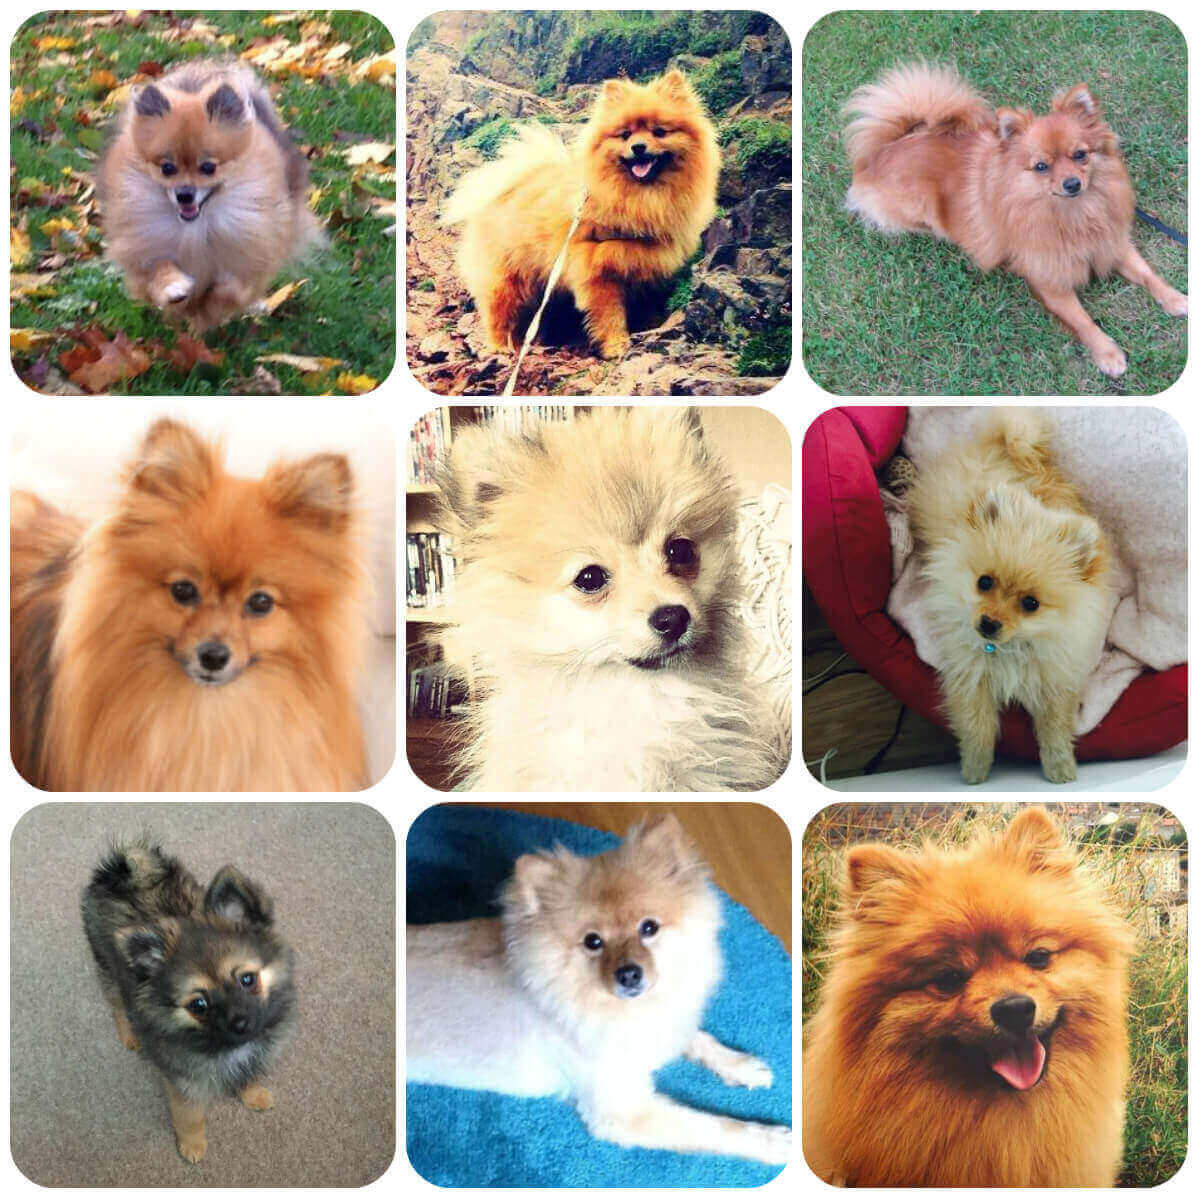 a collage of pomeranian dogs and puppies